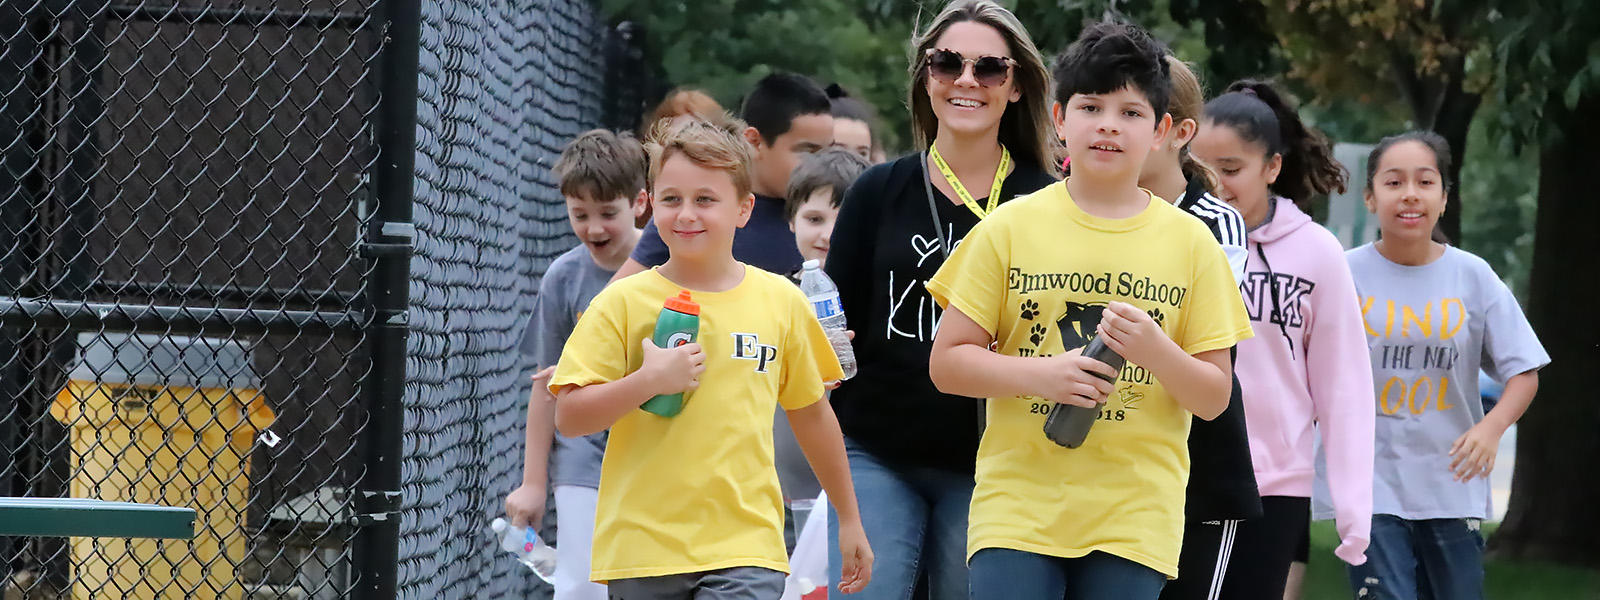 Students take part in the Elmwood PATT Walkathon.